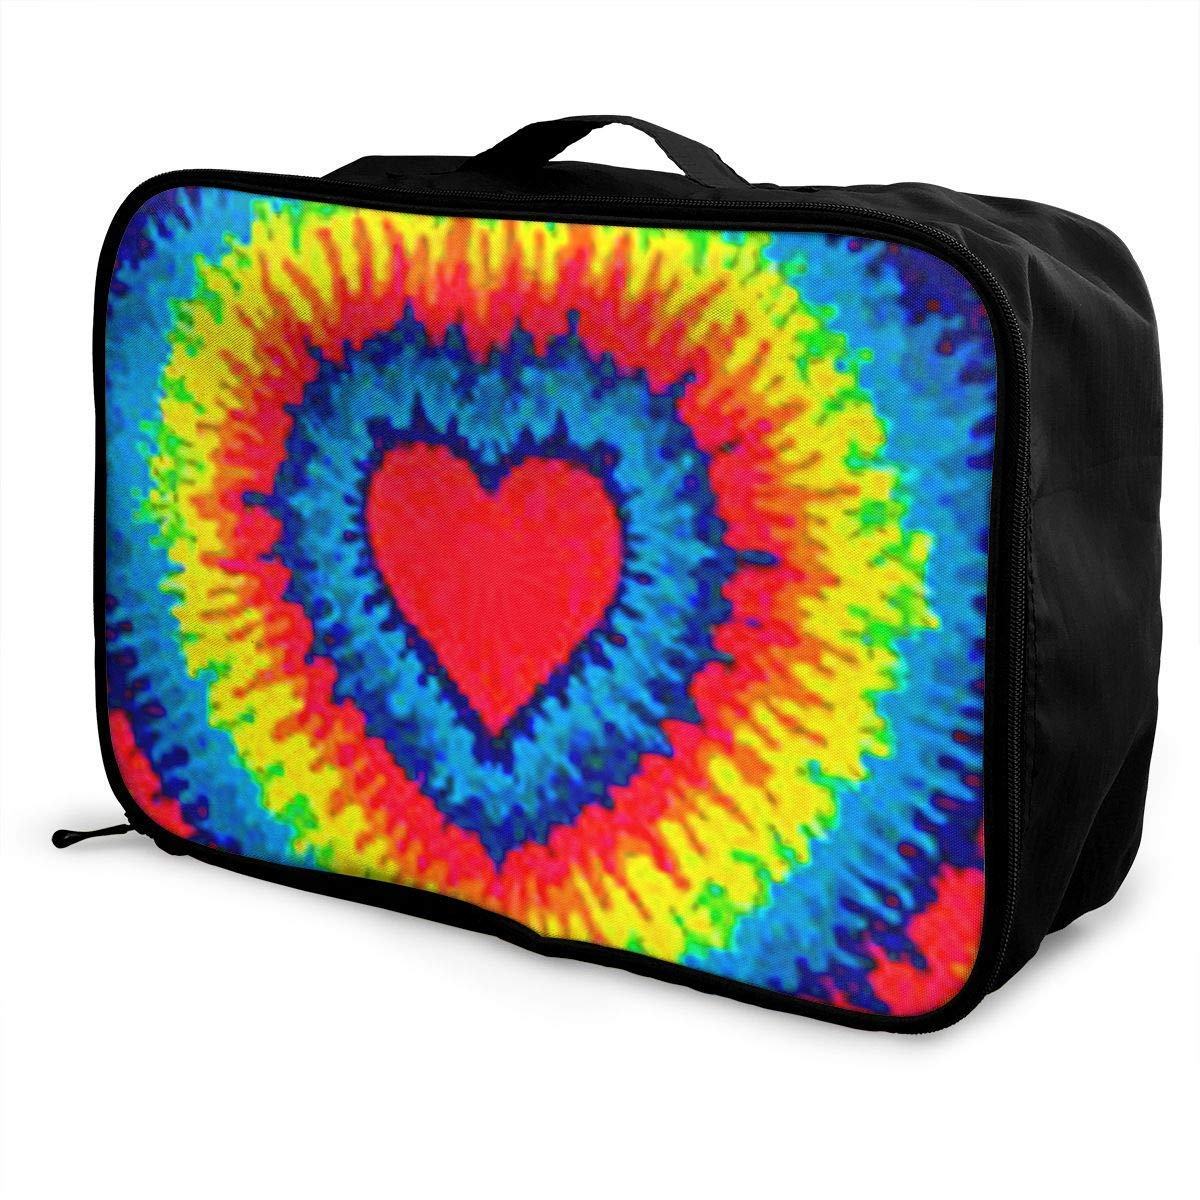 Portable Luggage Duffel Bag Tie Dye Travel Bags Carry-on in Trolley Handle JTRVW Luggage Bags for Travel